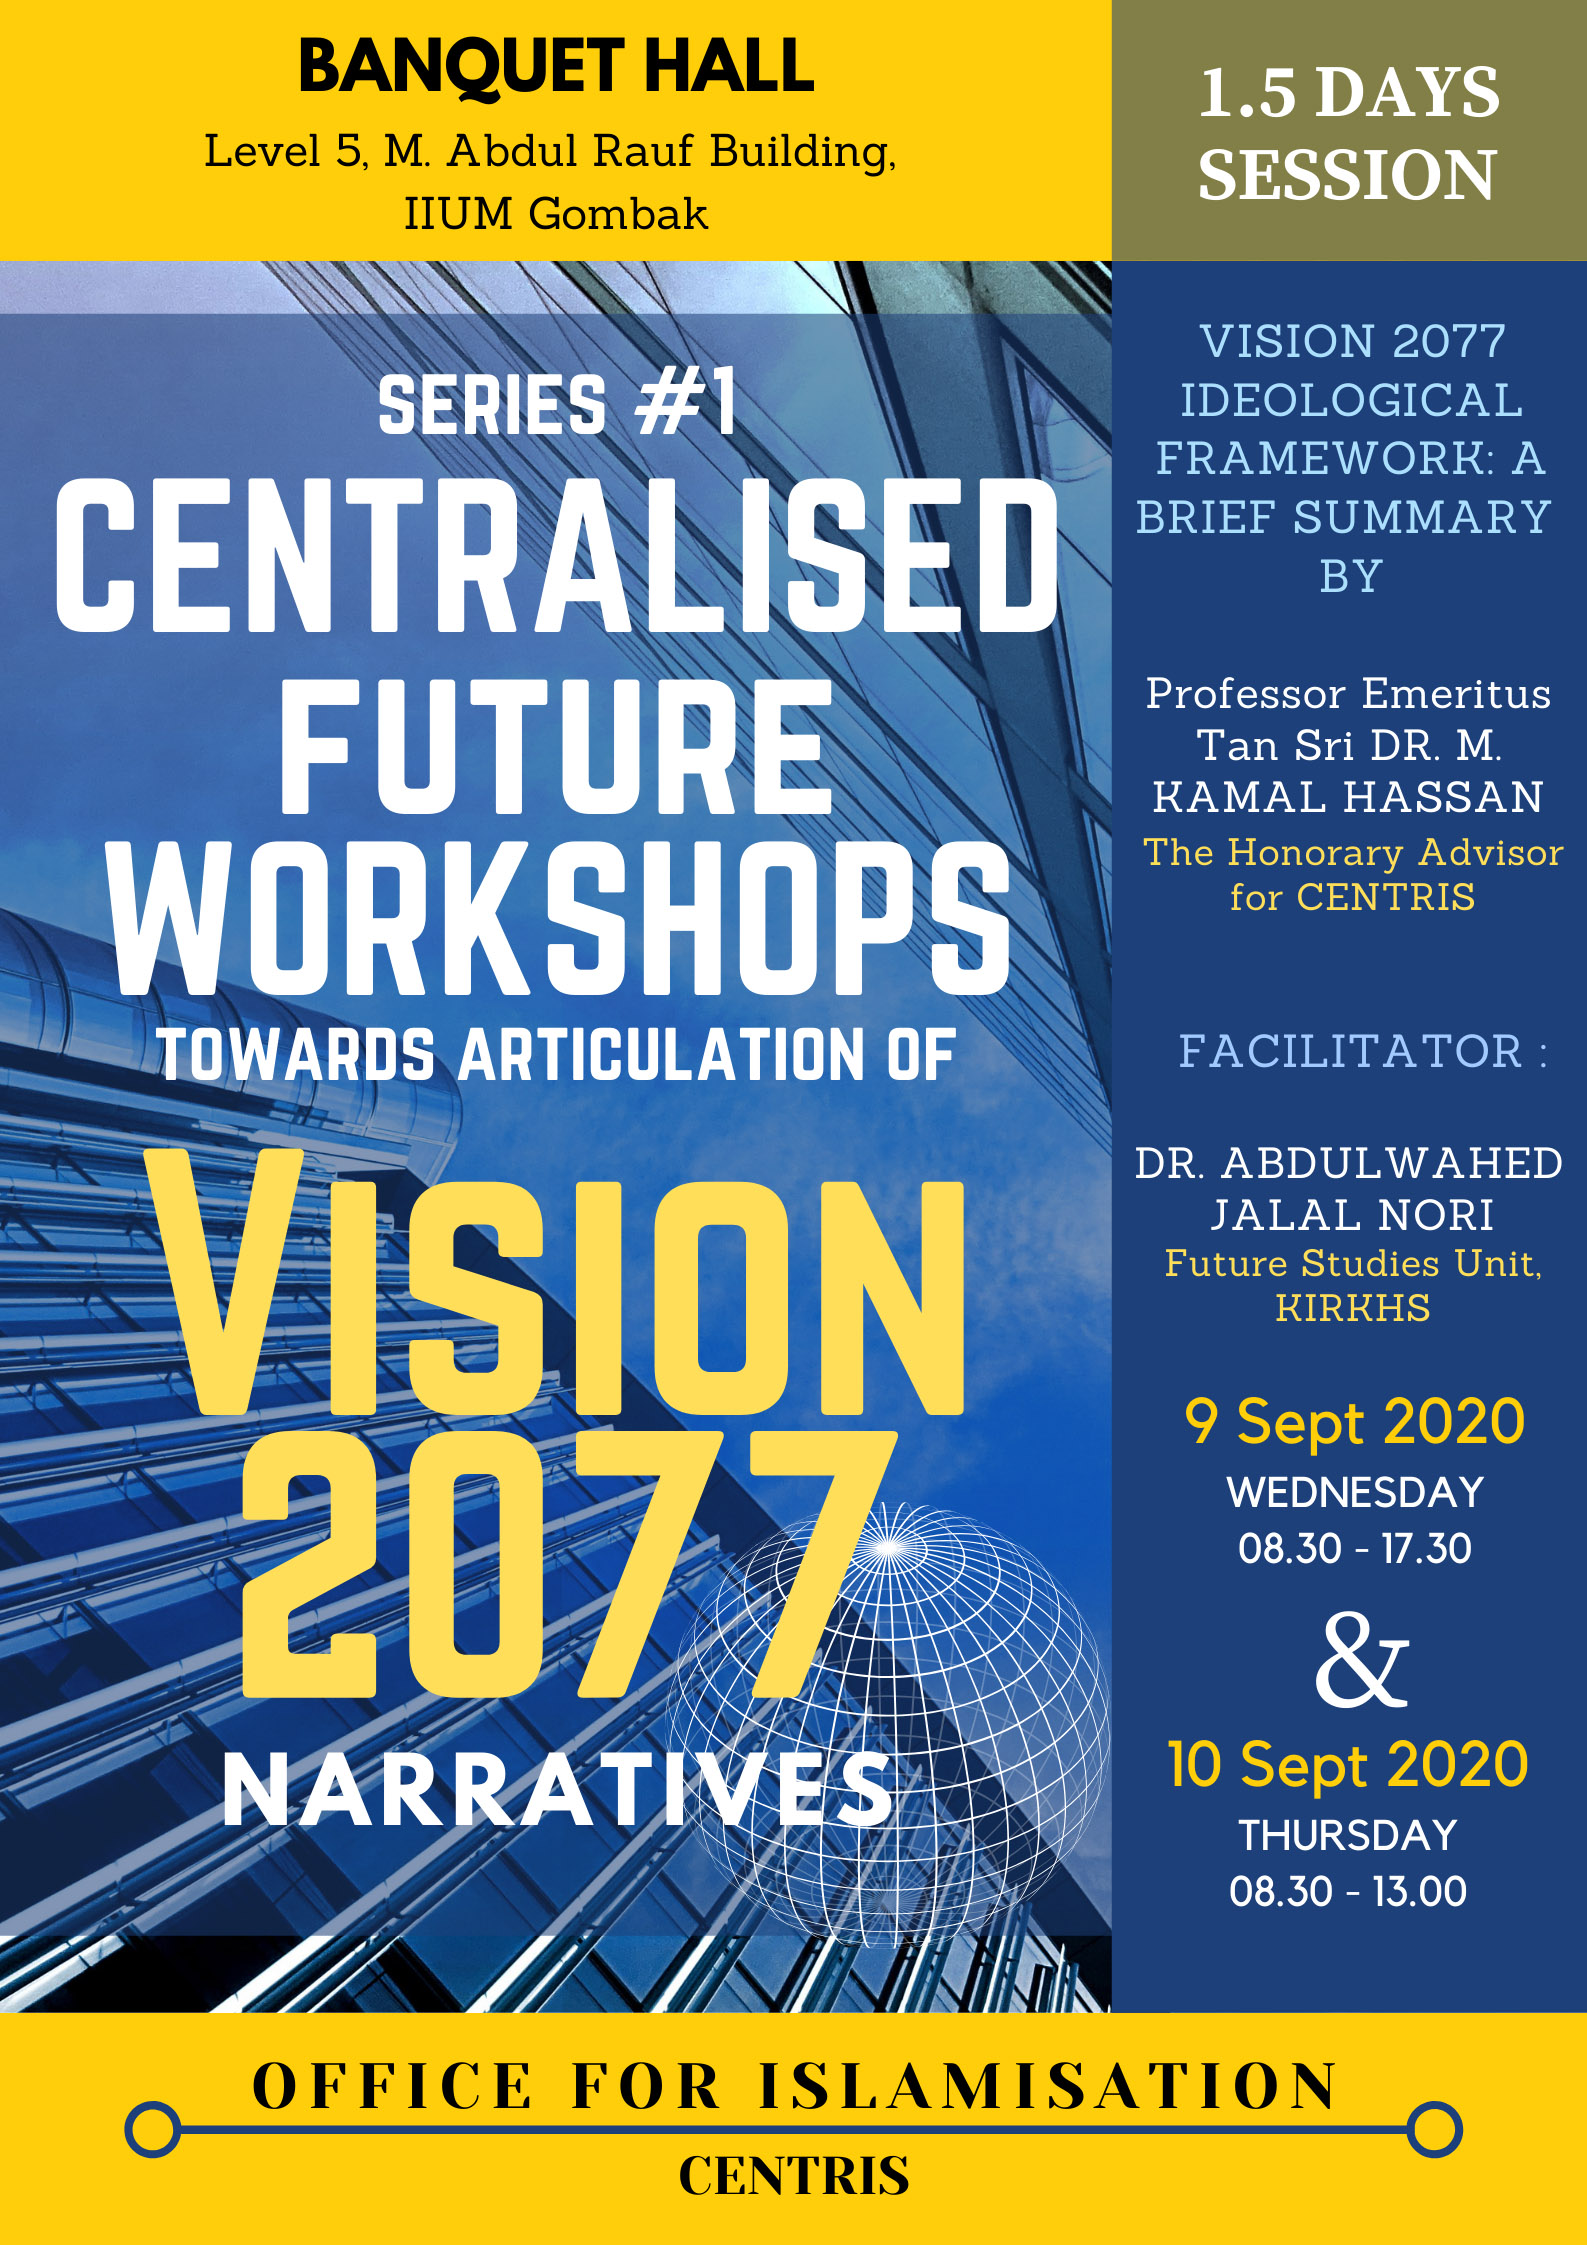 SERIES #1 CENTRALISED  FUTURE WORKSHOPS TOWARDS ARTICULATION OF VISION 2077